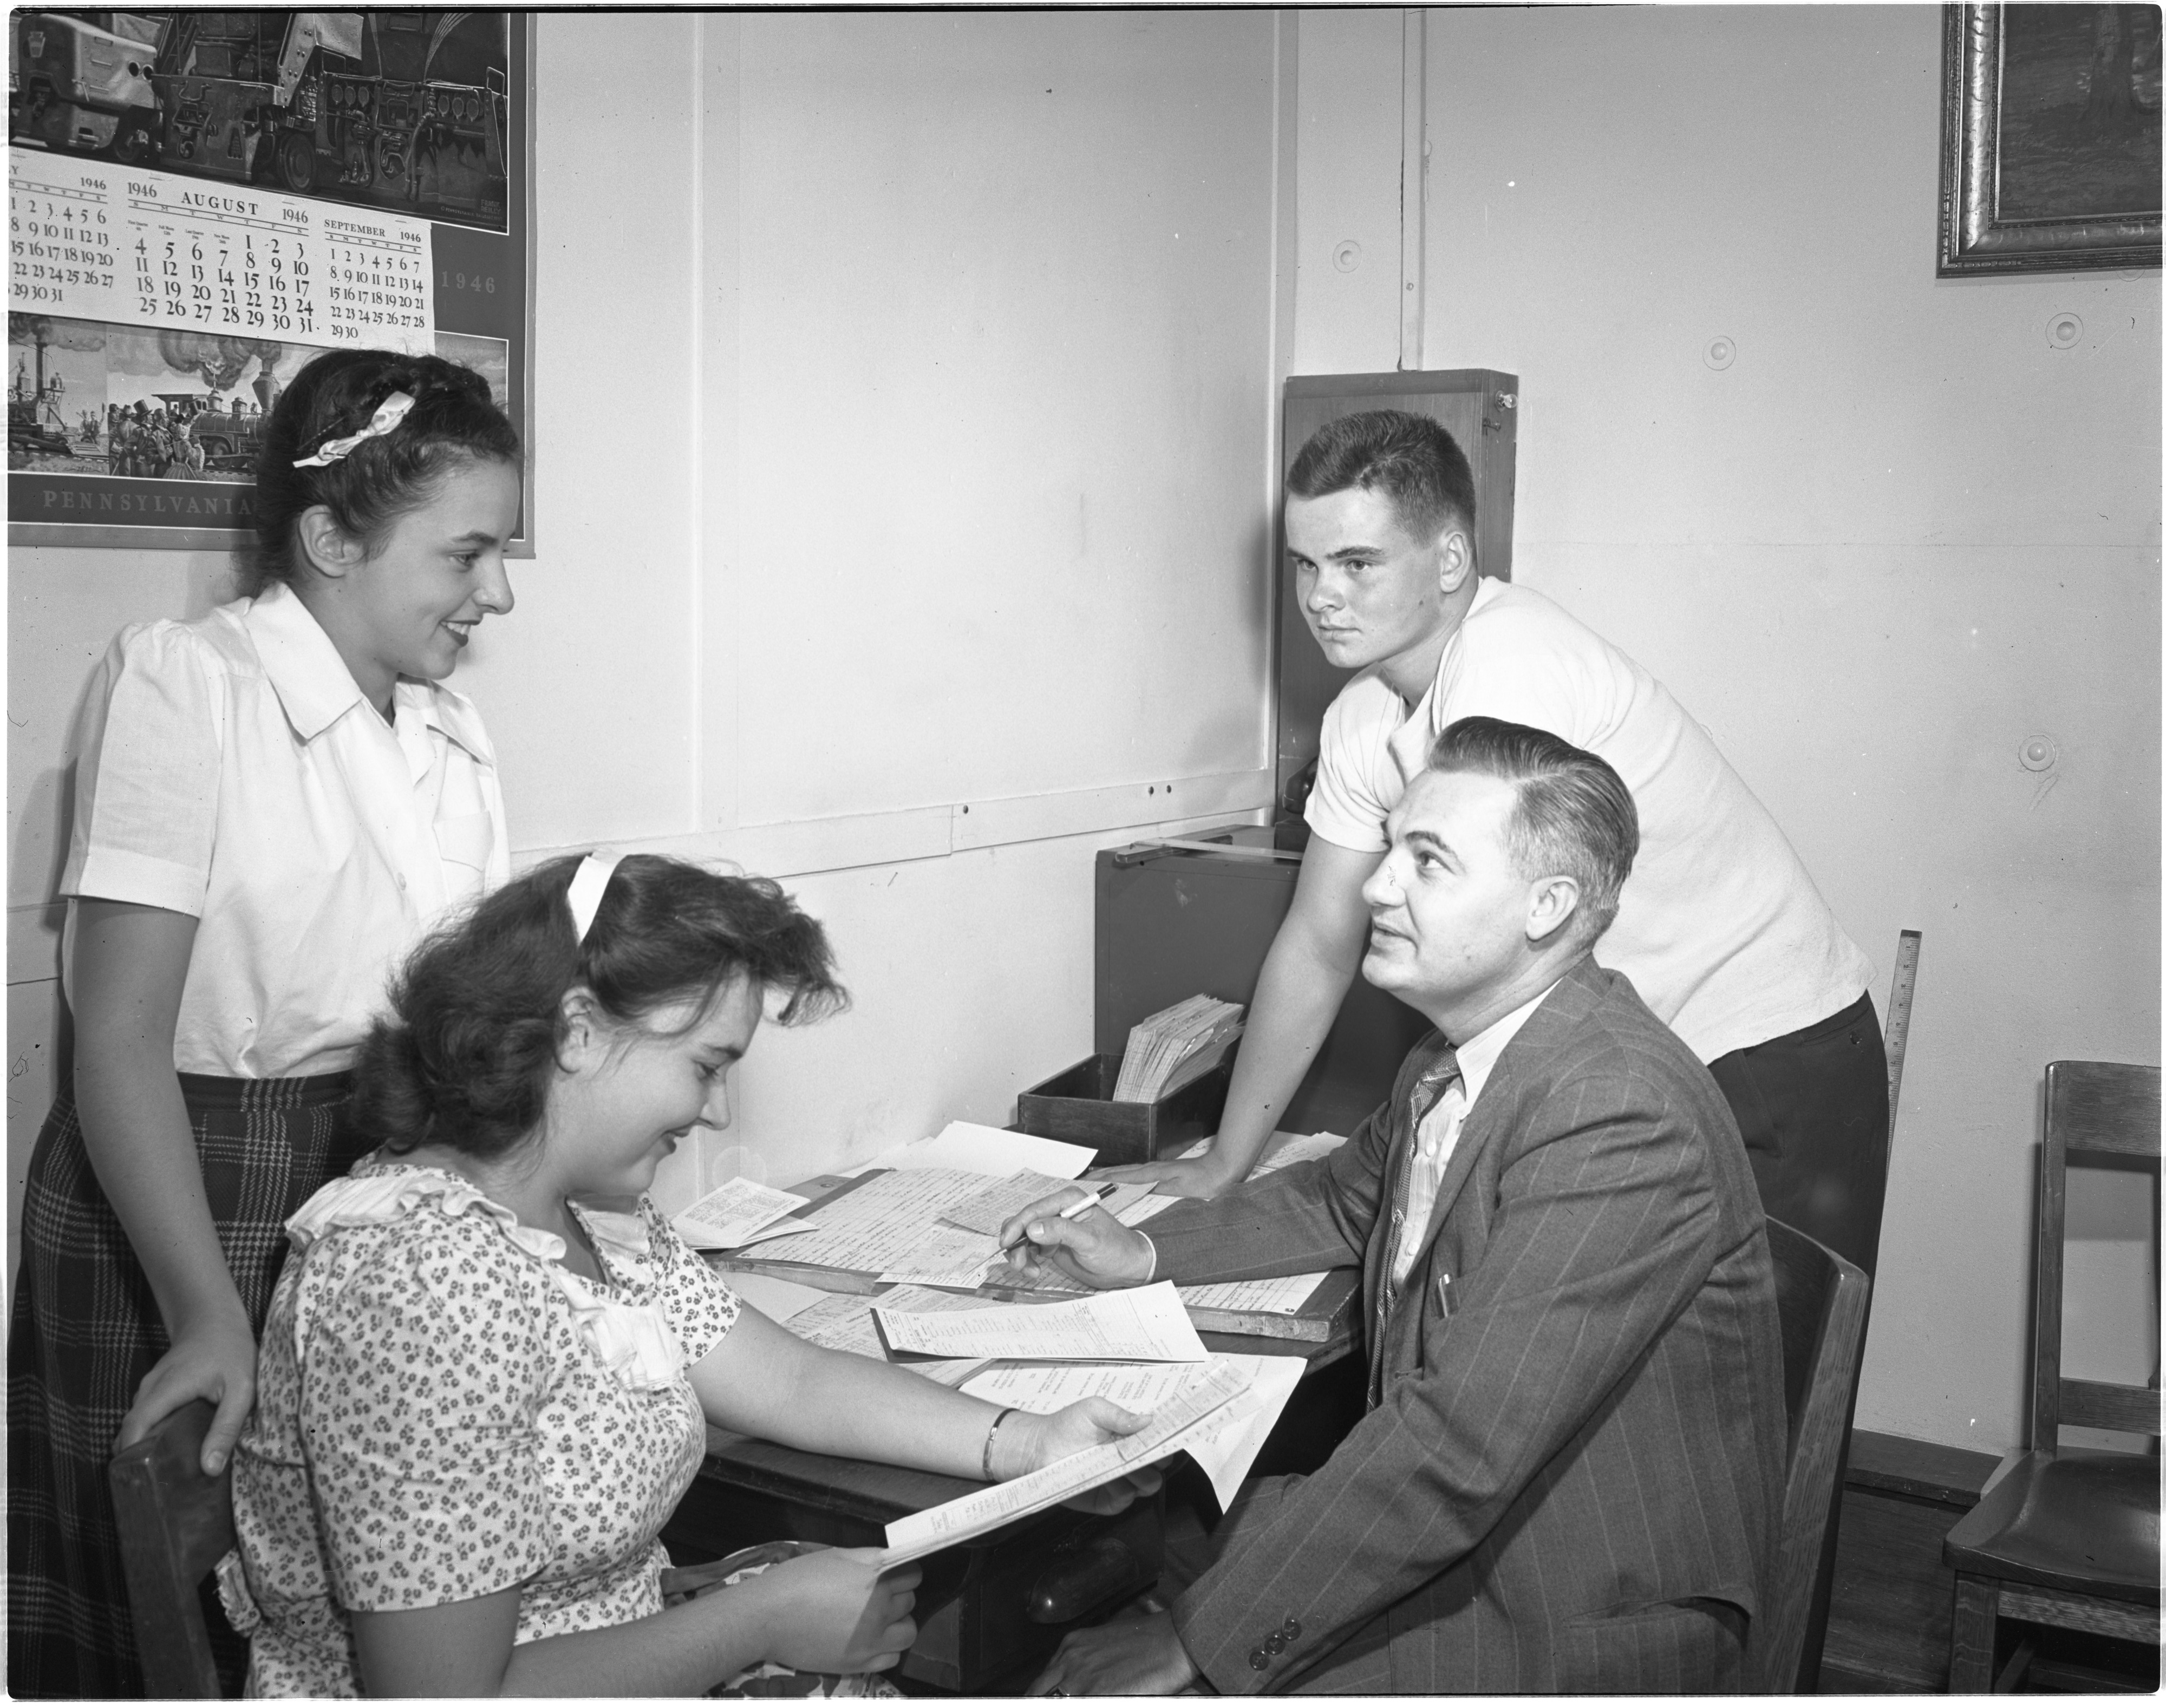 New City Residents Enroll In Ann Arbor High School, August 1946 image